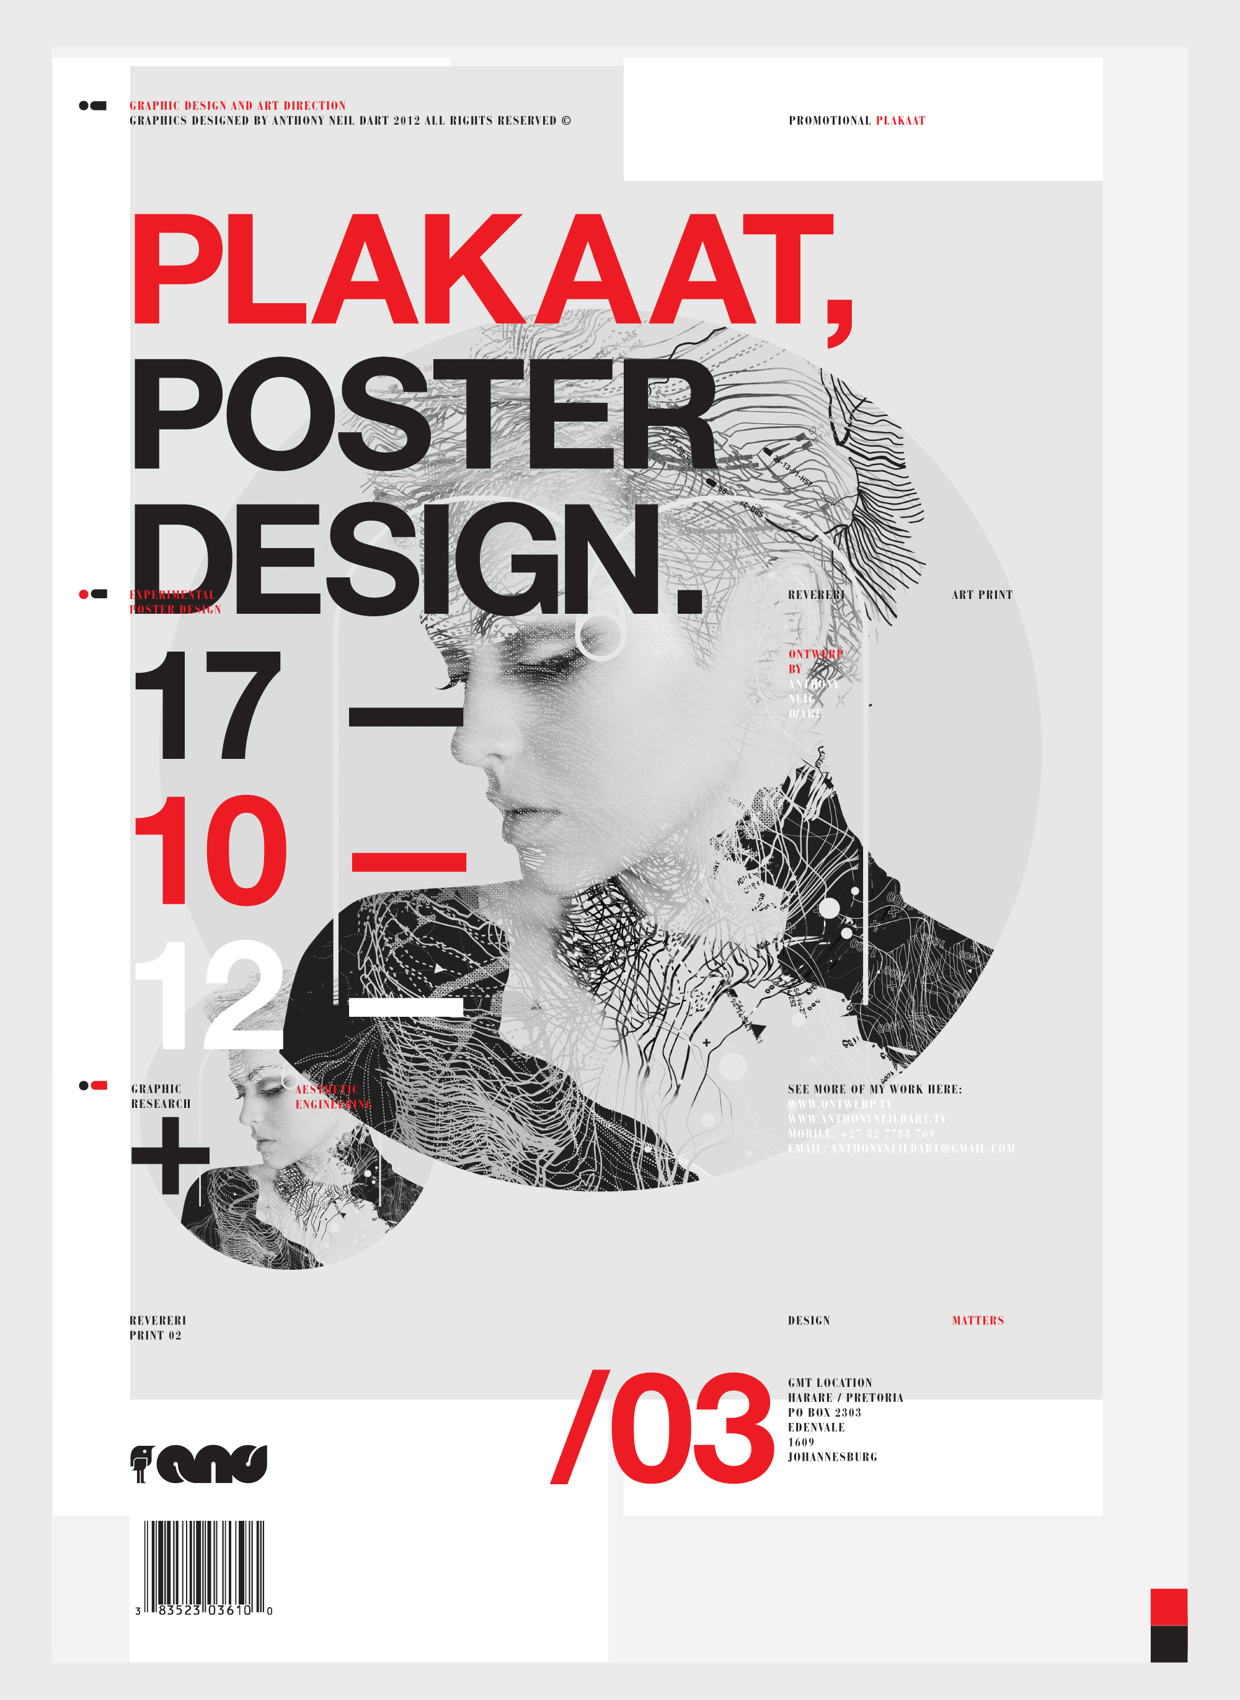 Poster design johannesburg - Plakaat A Self Promotional Series Of A3 Prints By Johannesburg Based Graphic Designer Anthony Neil Dart